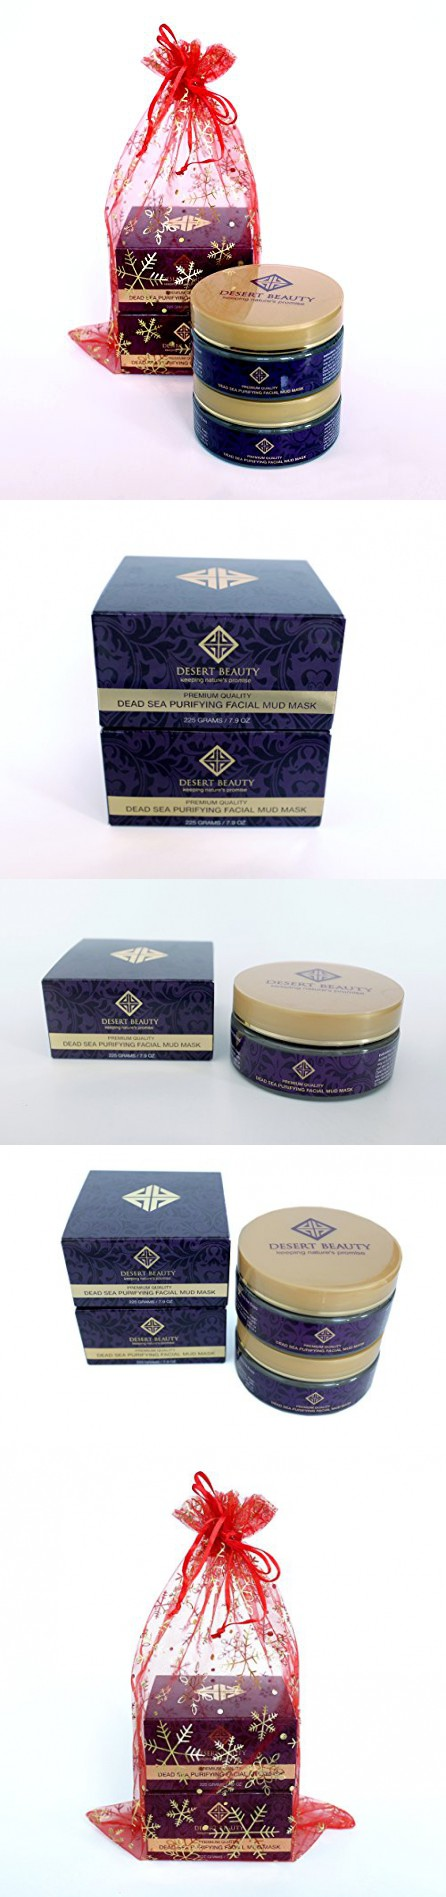 Gift Set 2 In 1 Spa Quality Authentic Dead Sea Mud Mask For At Home Soap Ampamp Glory Irresistibubble